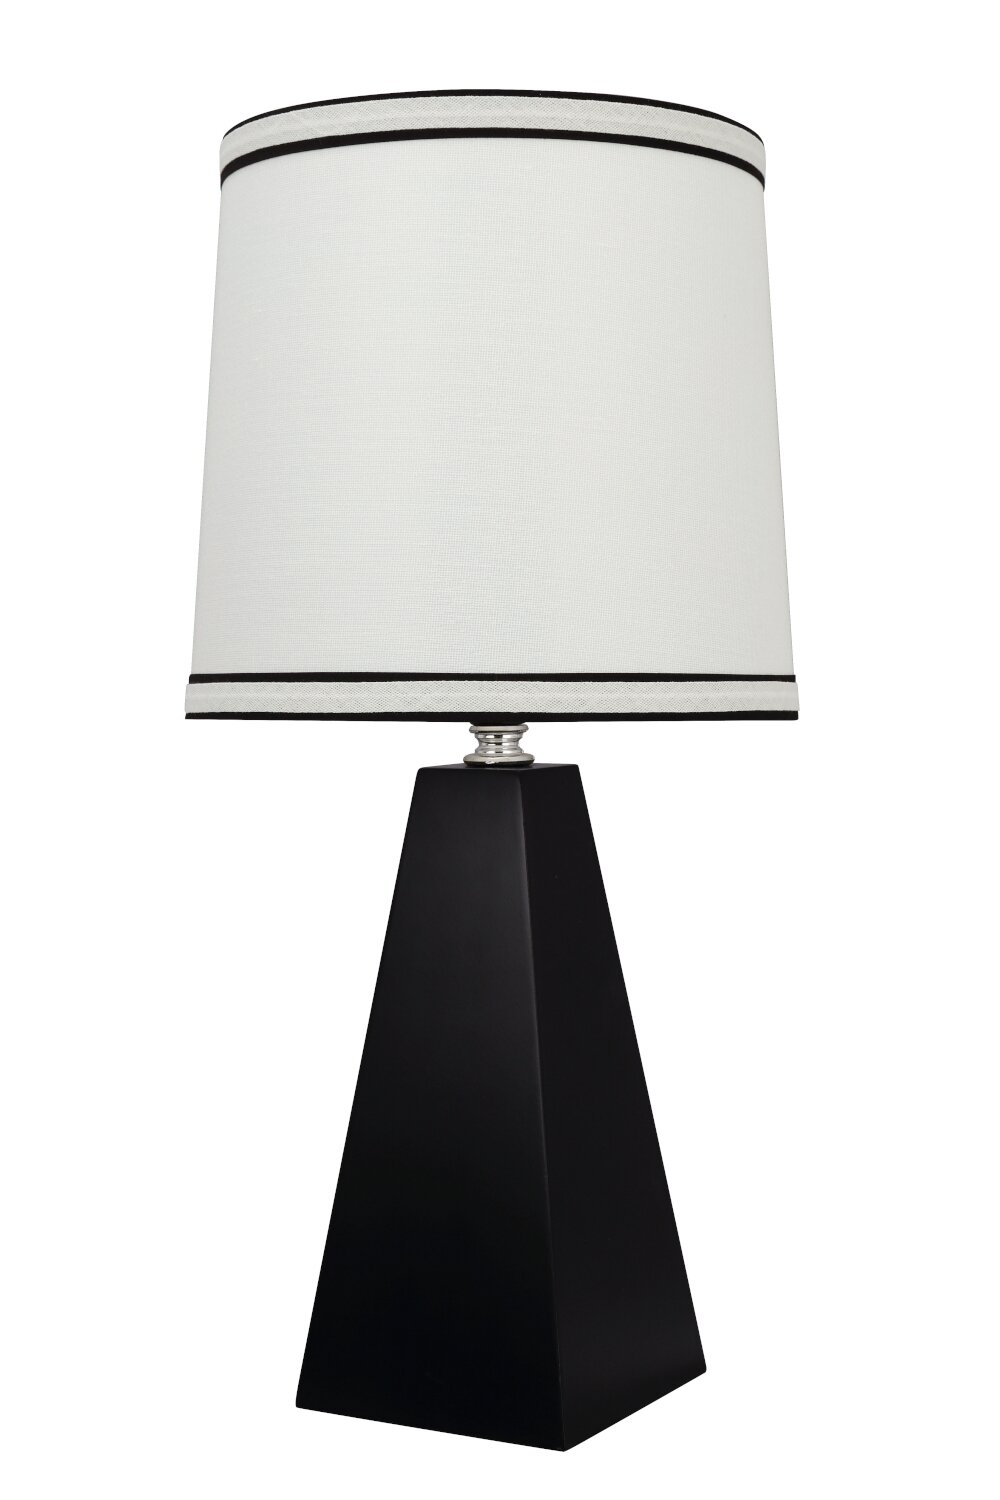 Ebern Designs Gaier 17 Table Lamp Wayfair